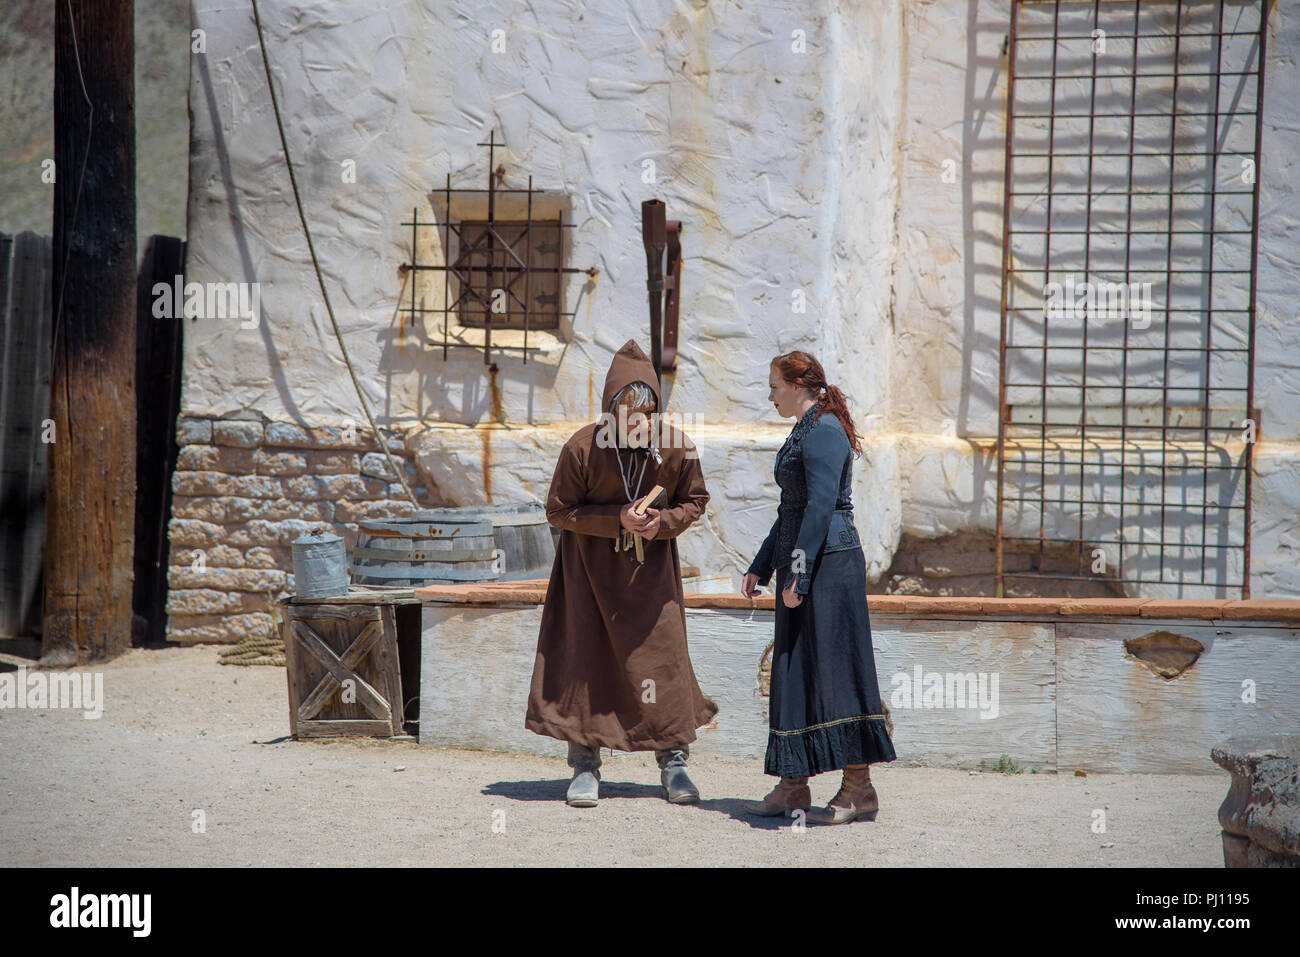 Priest and woman (actors) performing outside at Old Tucson movie studios. - Stock Image